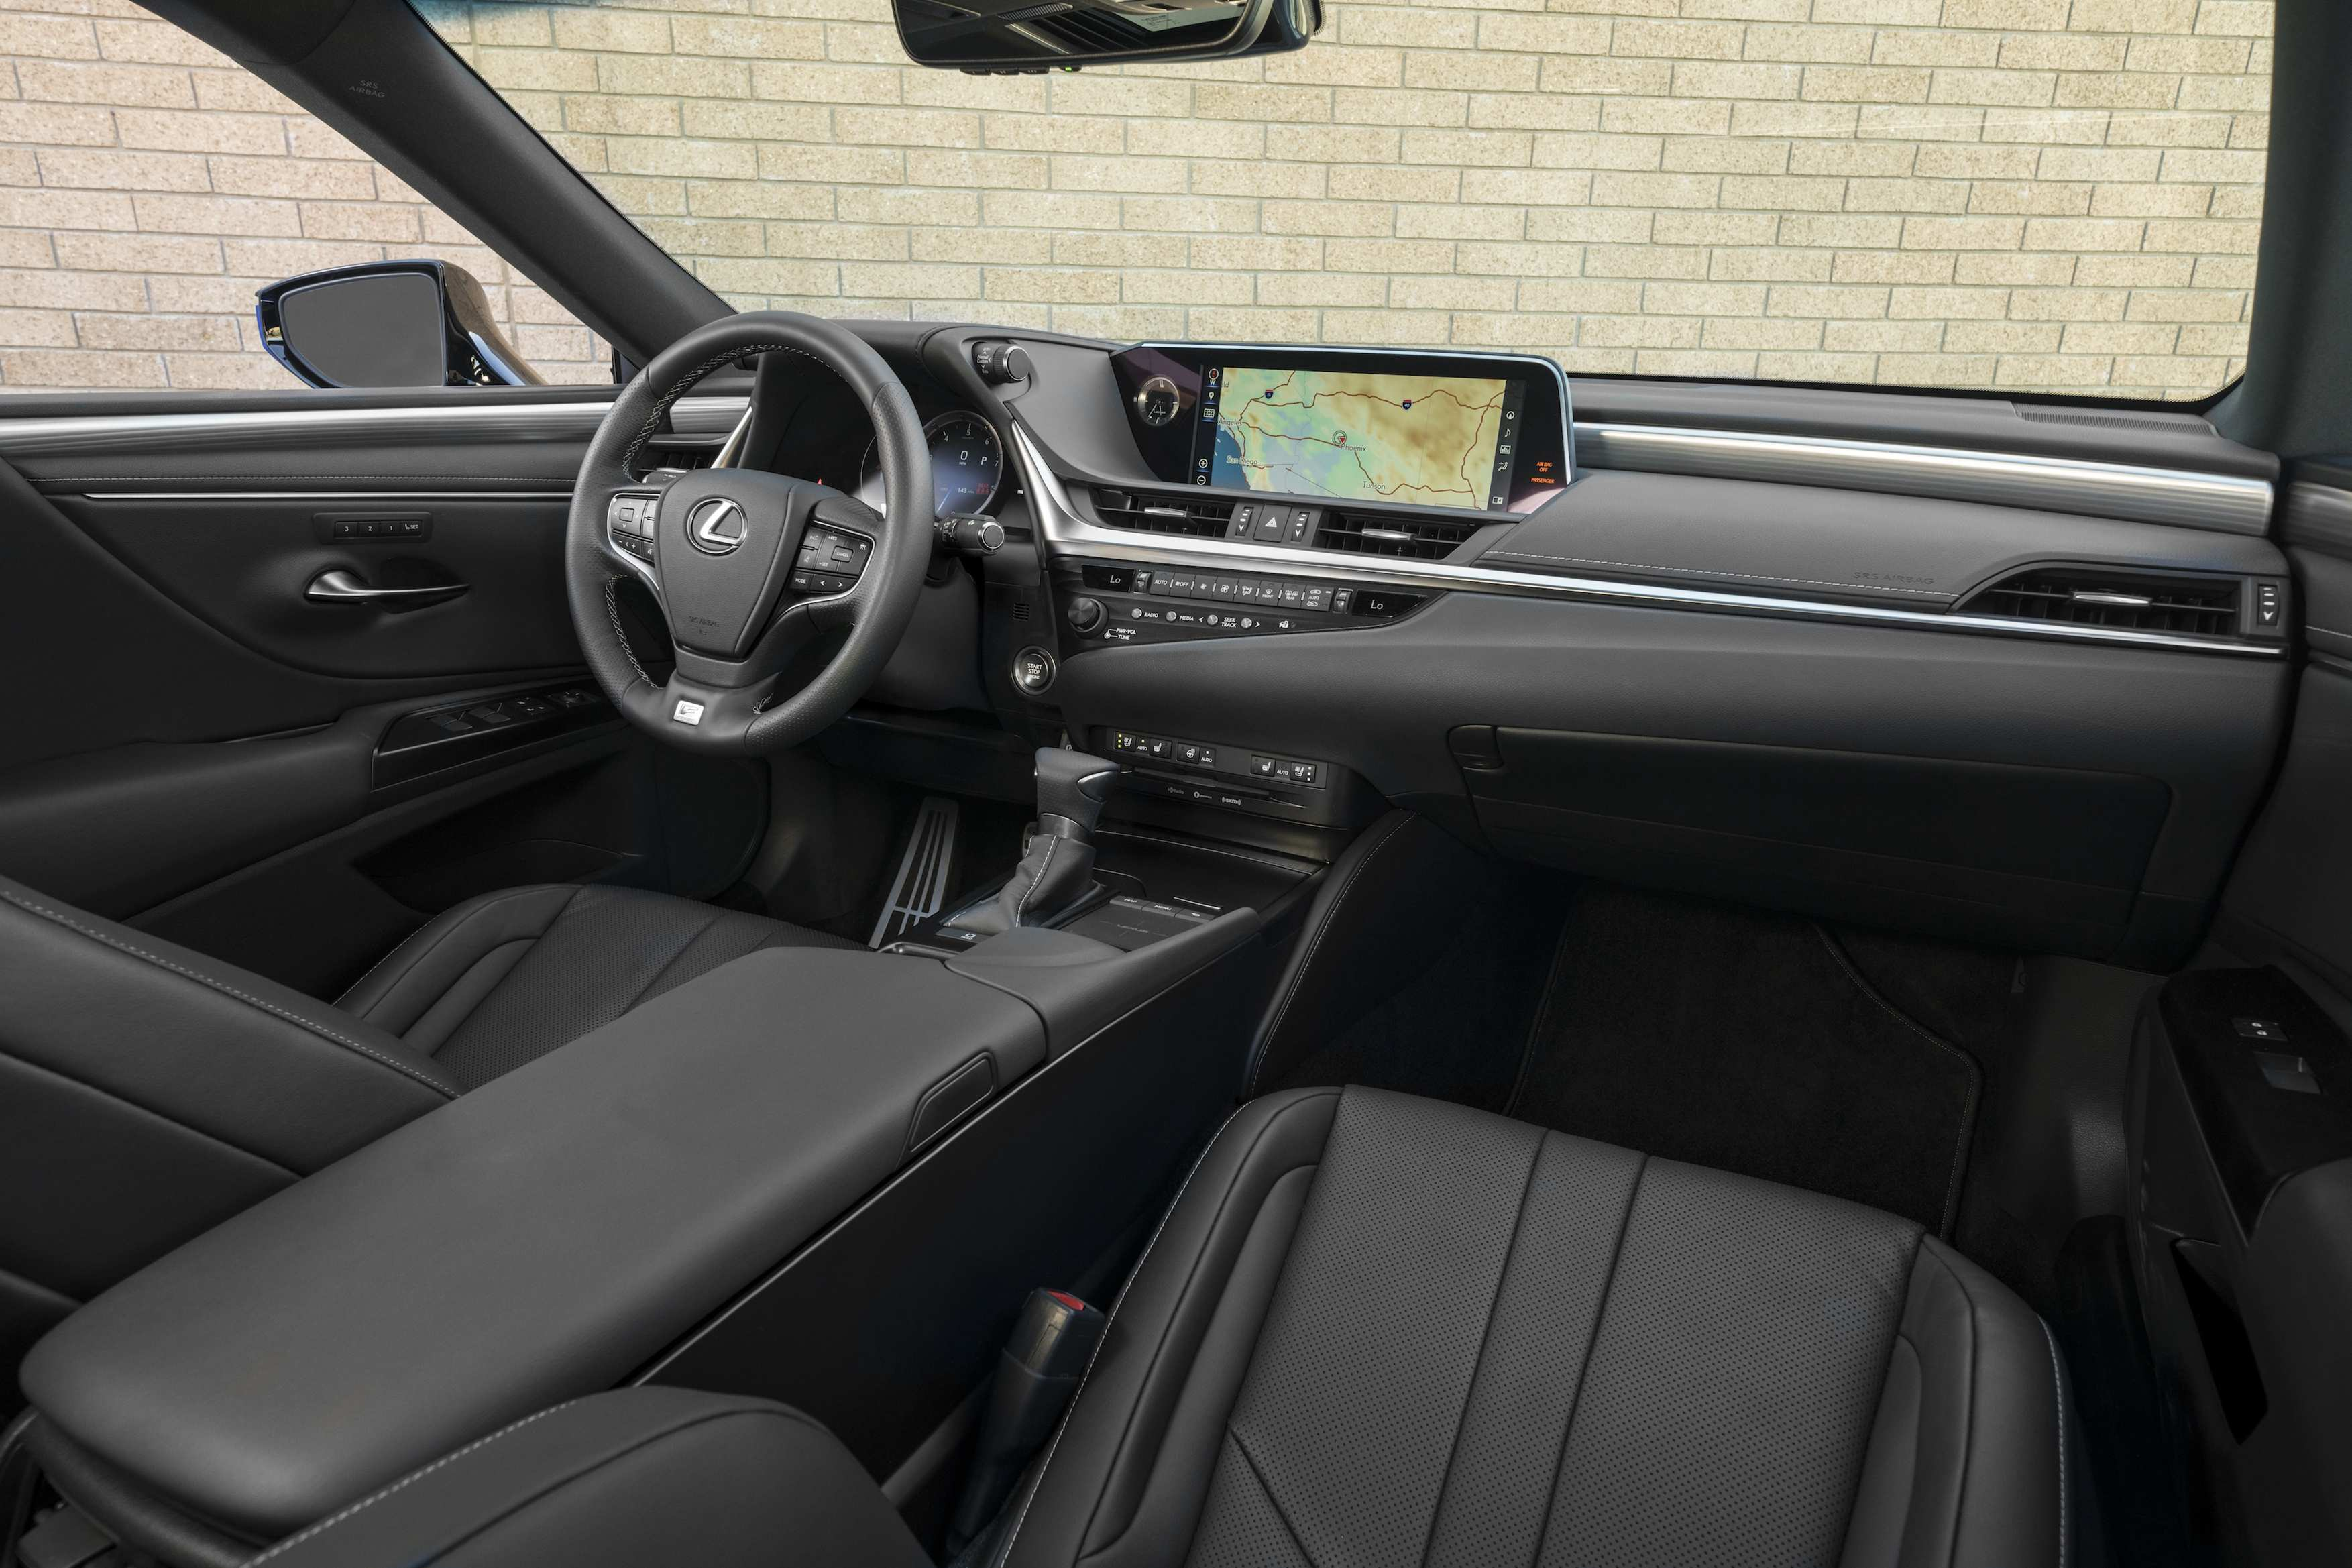 59 Best Review 2019 Lexus Es 350 Interior New Review with 2019 Lexus Es 350 Interior